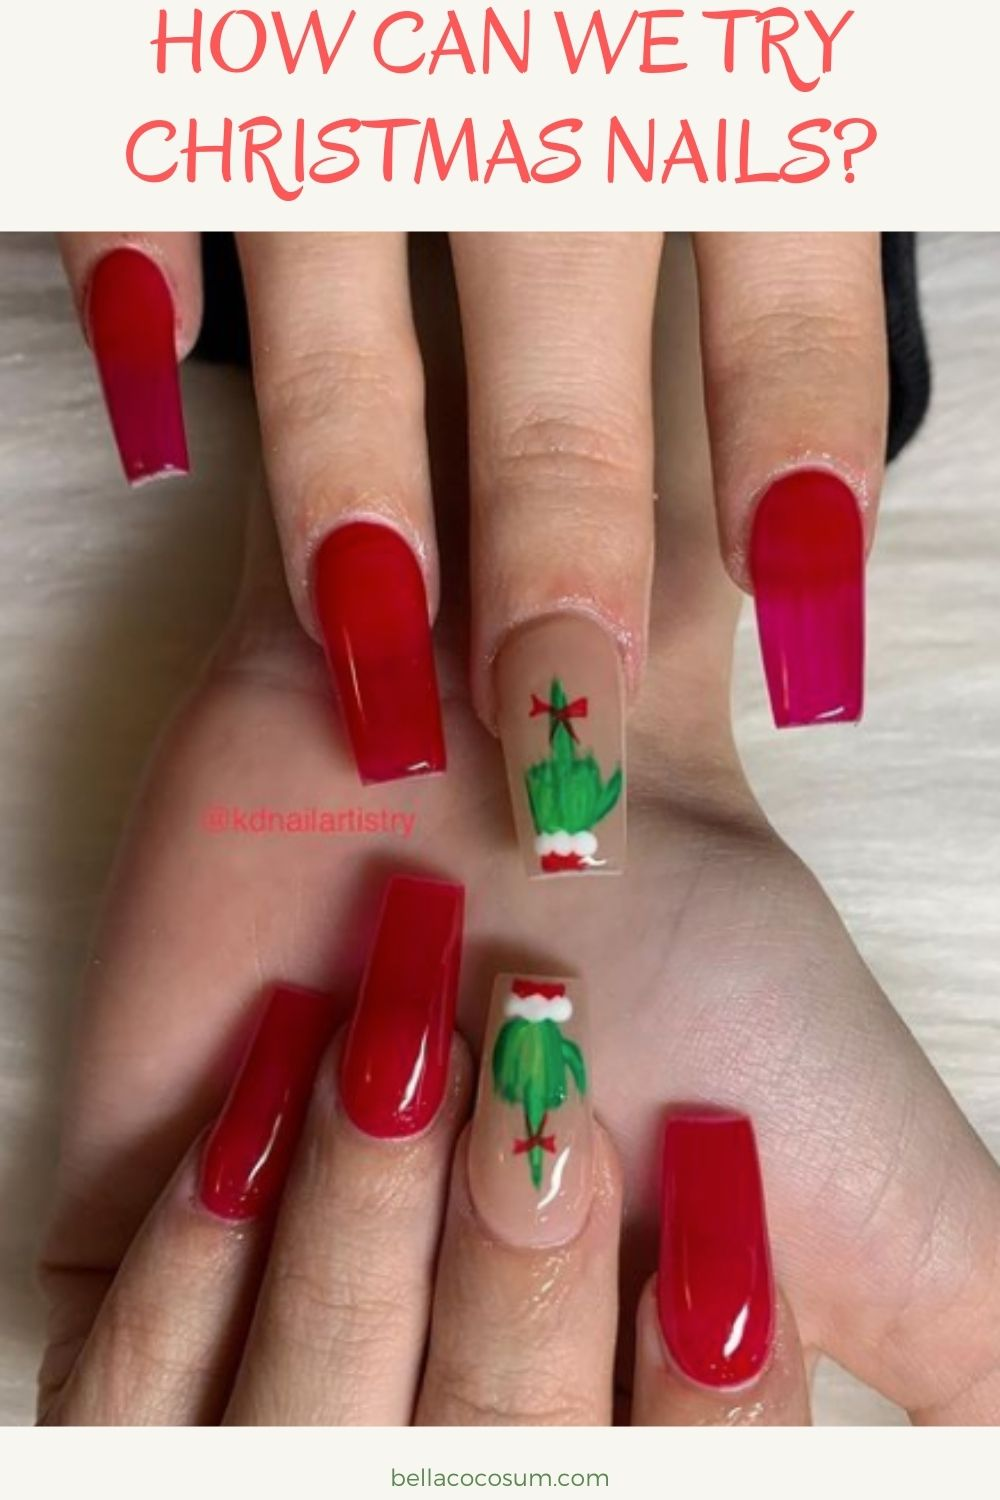 How can we try Christmas nails?